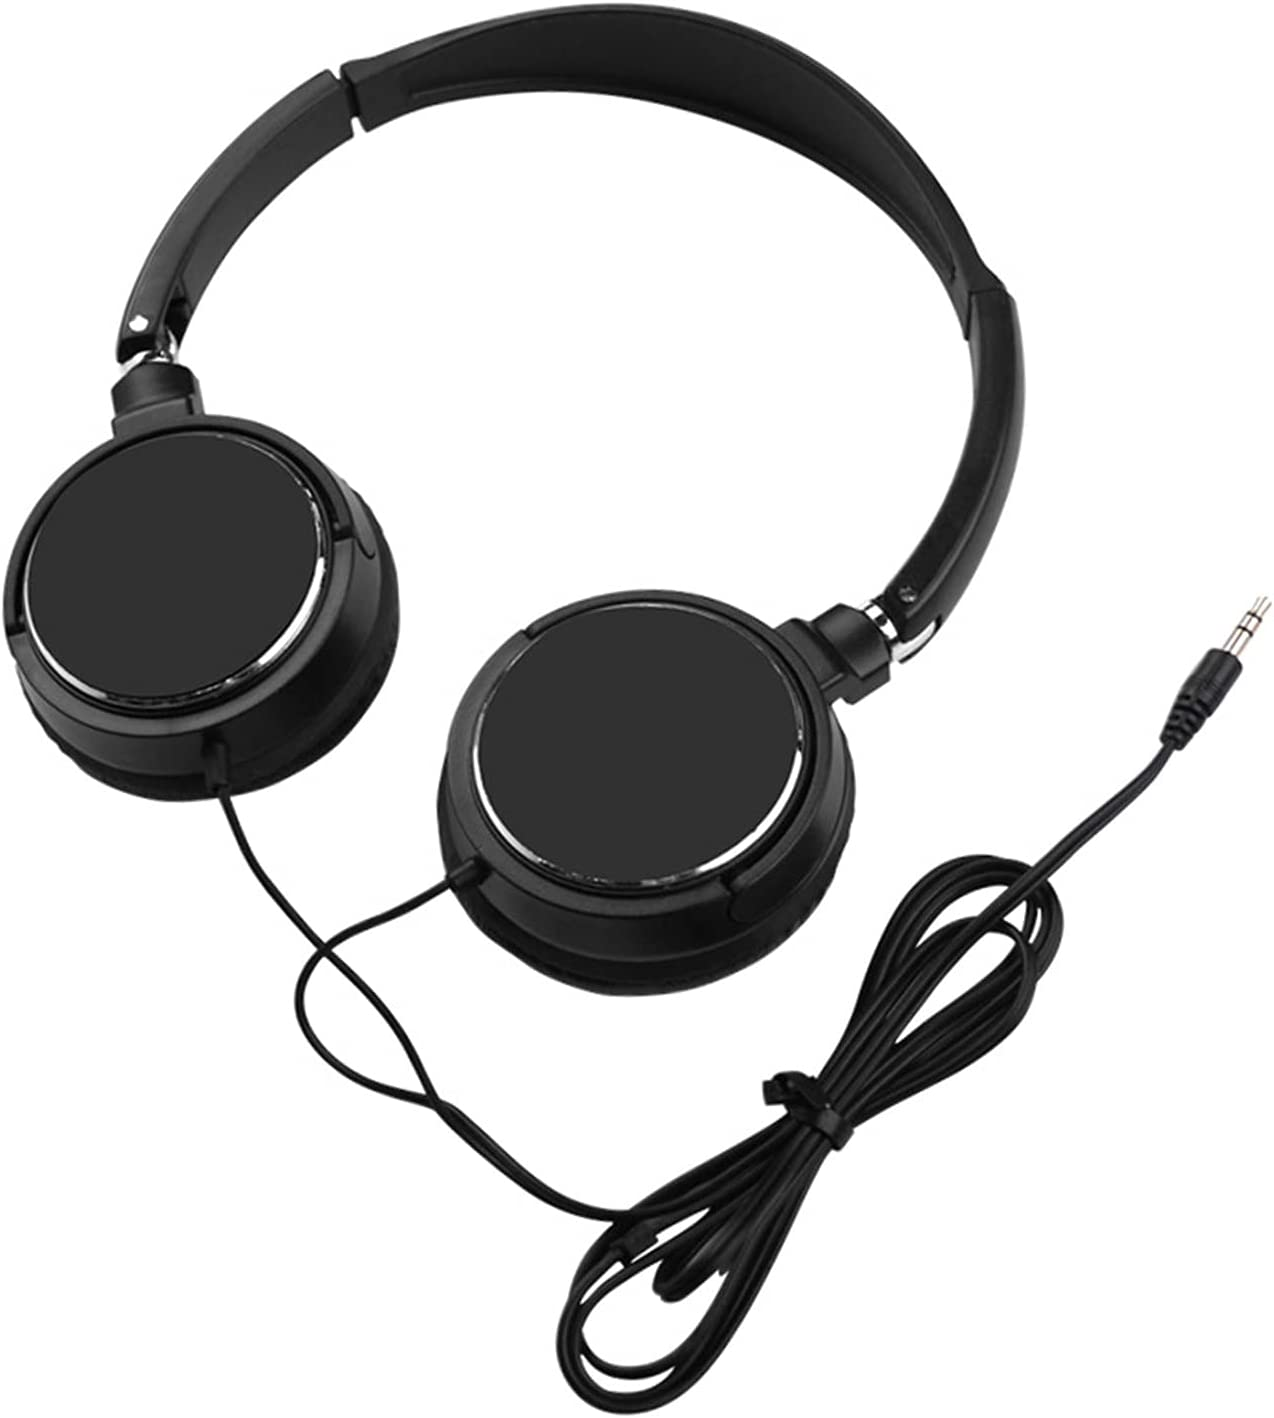 Universal Headphone Over Ear HiFi Stereo Sound Portable Wired Headset for Mobile Phone - Black